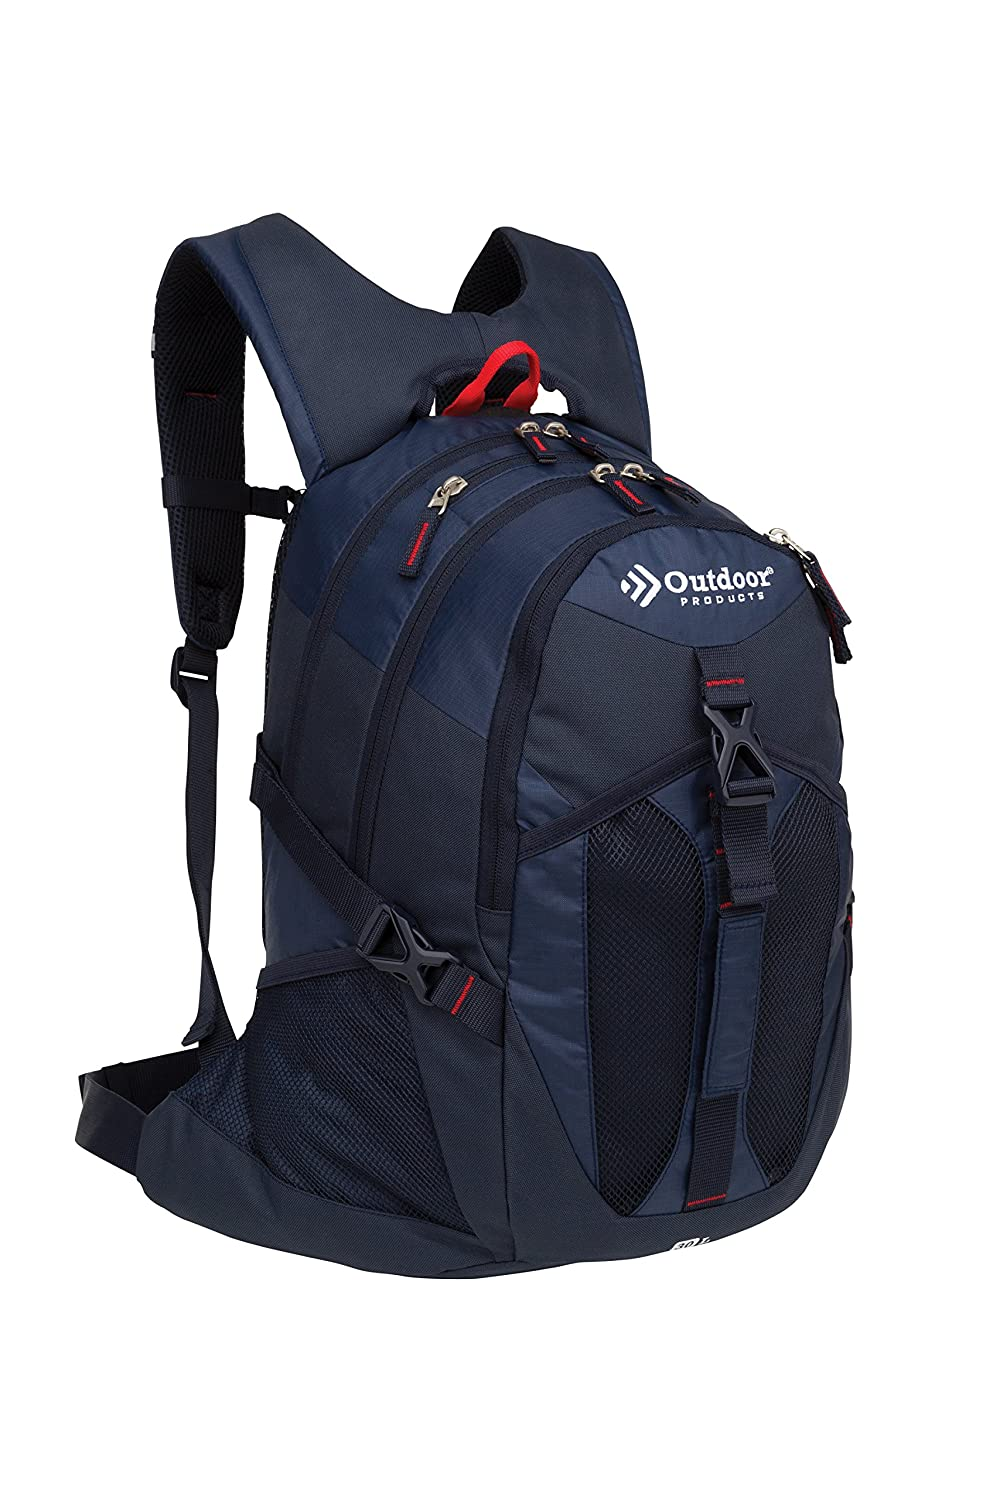 Outdoor Products Ridge Day Pack